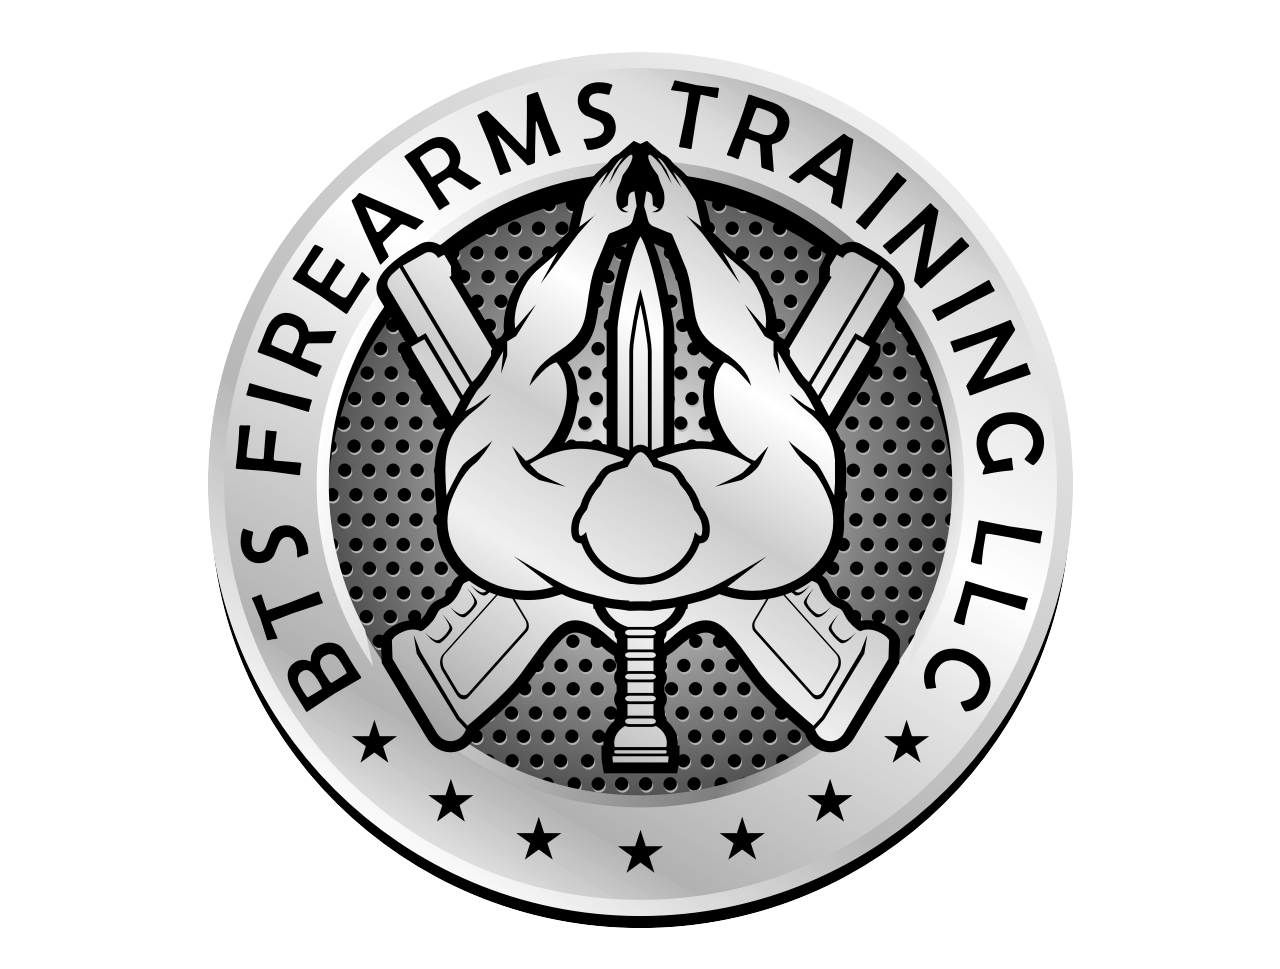 BTS FIREARMS TRAINING Tactical pistol, Firearms, Hand to